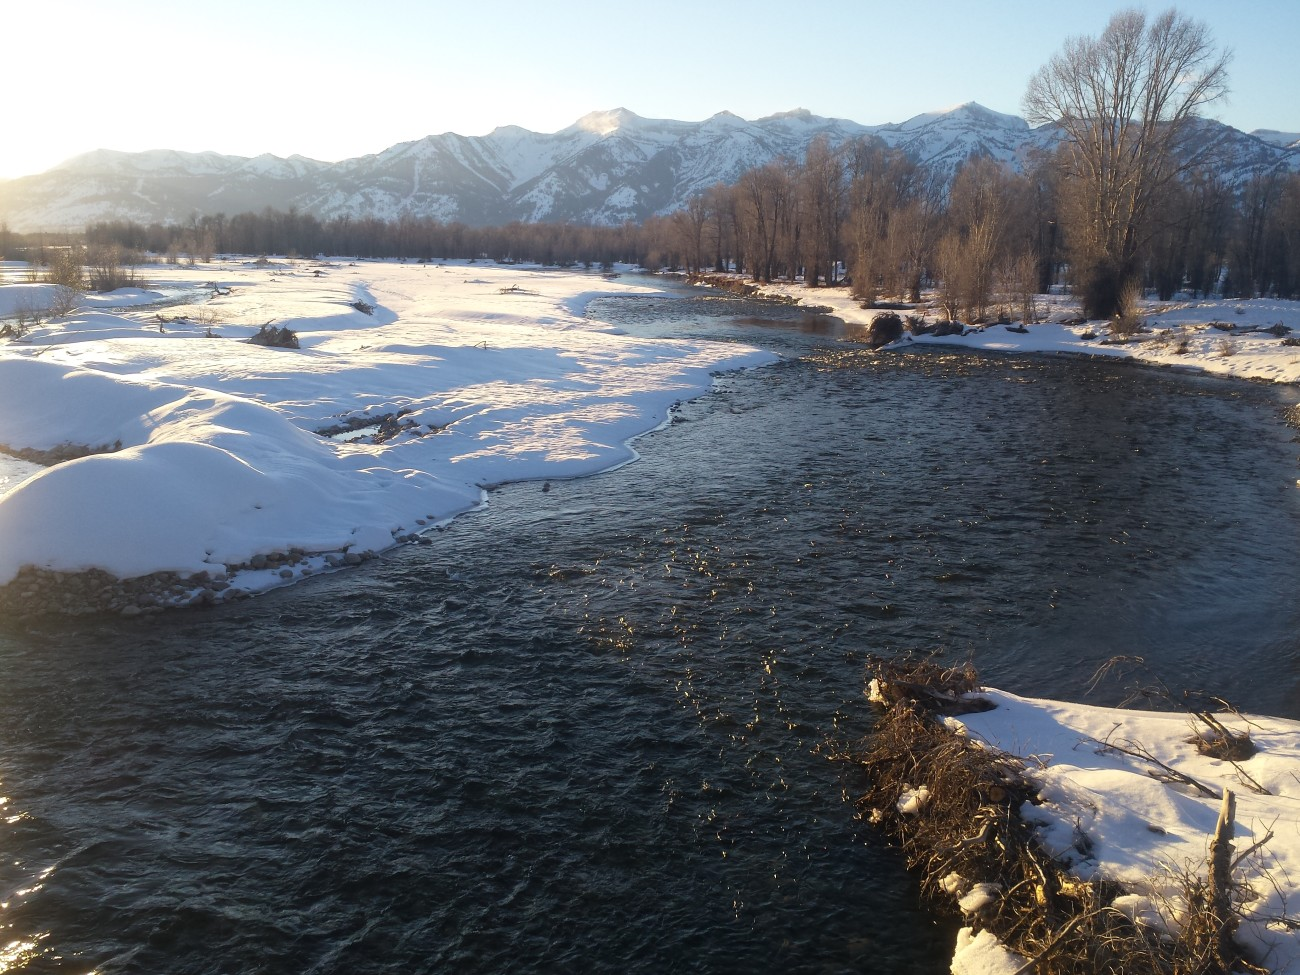 Gros ventre river in the winter 2015